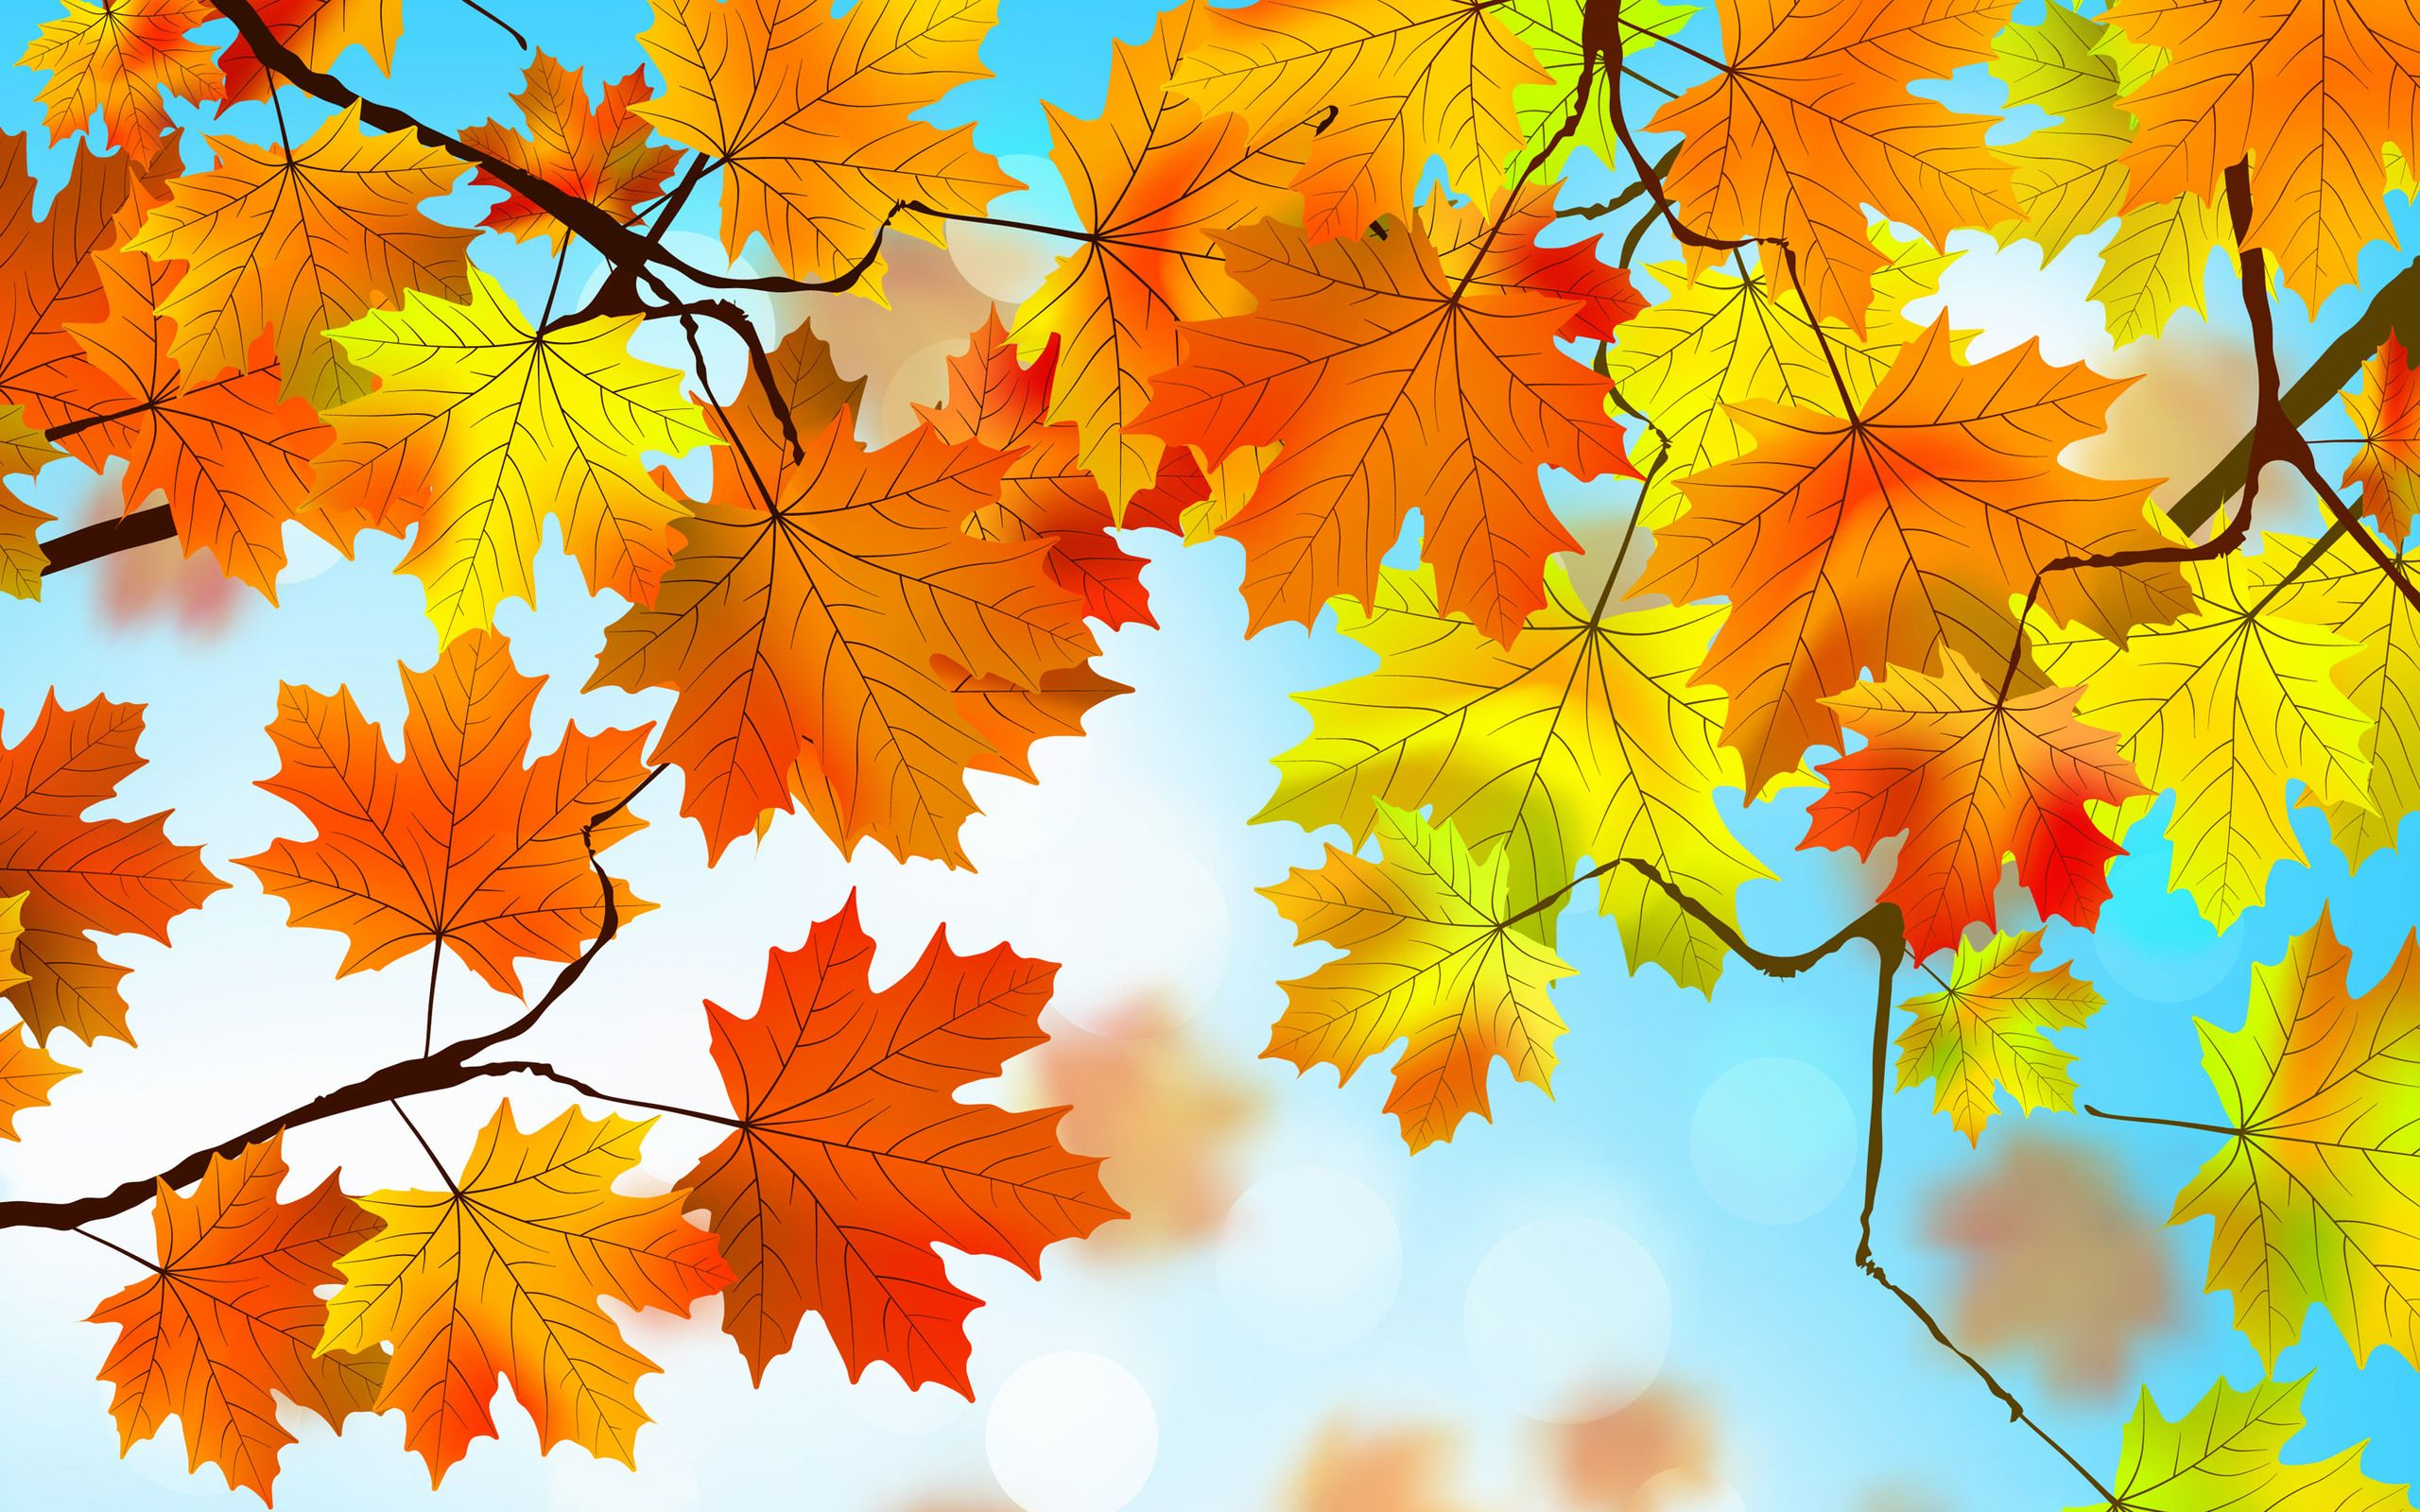 2560x1600 Autumn Leaves HD 2560x1600 Resolution HD 4k Wallpapers ...